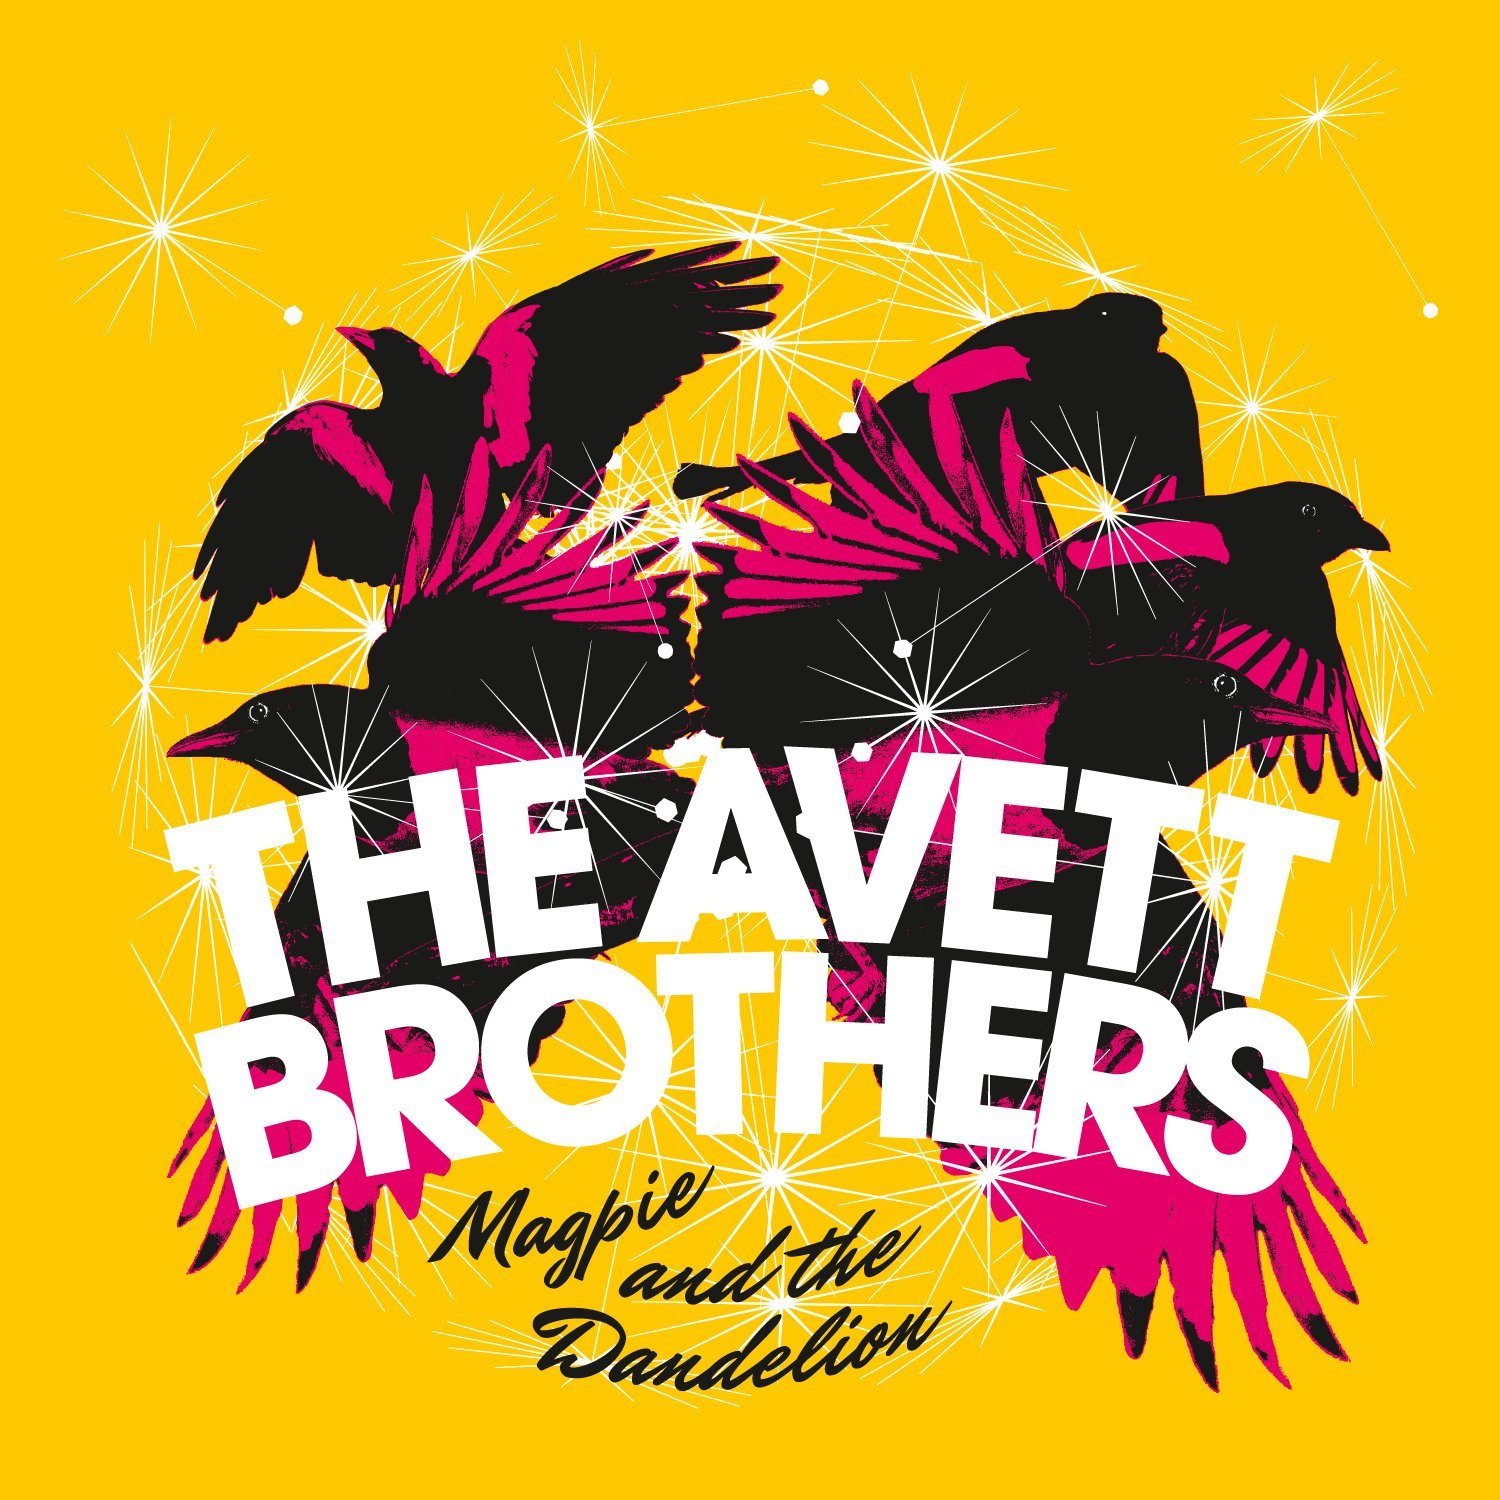 """Magpie and the Dandelion"" is Yet Another Hit from The Avett Brothers"